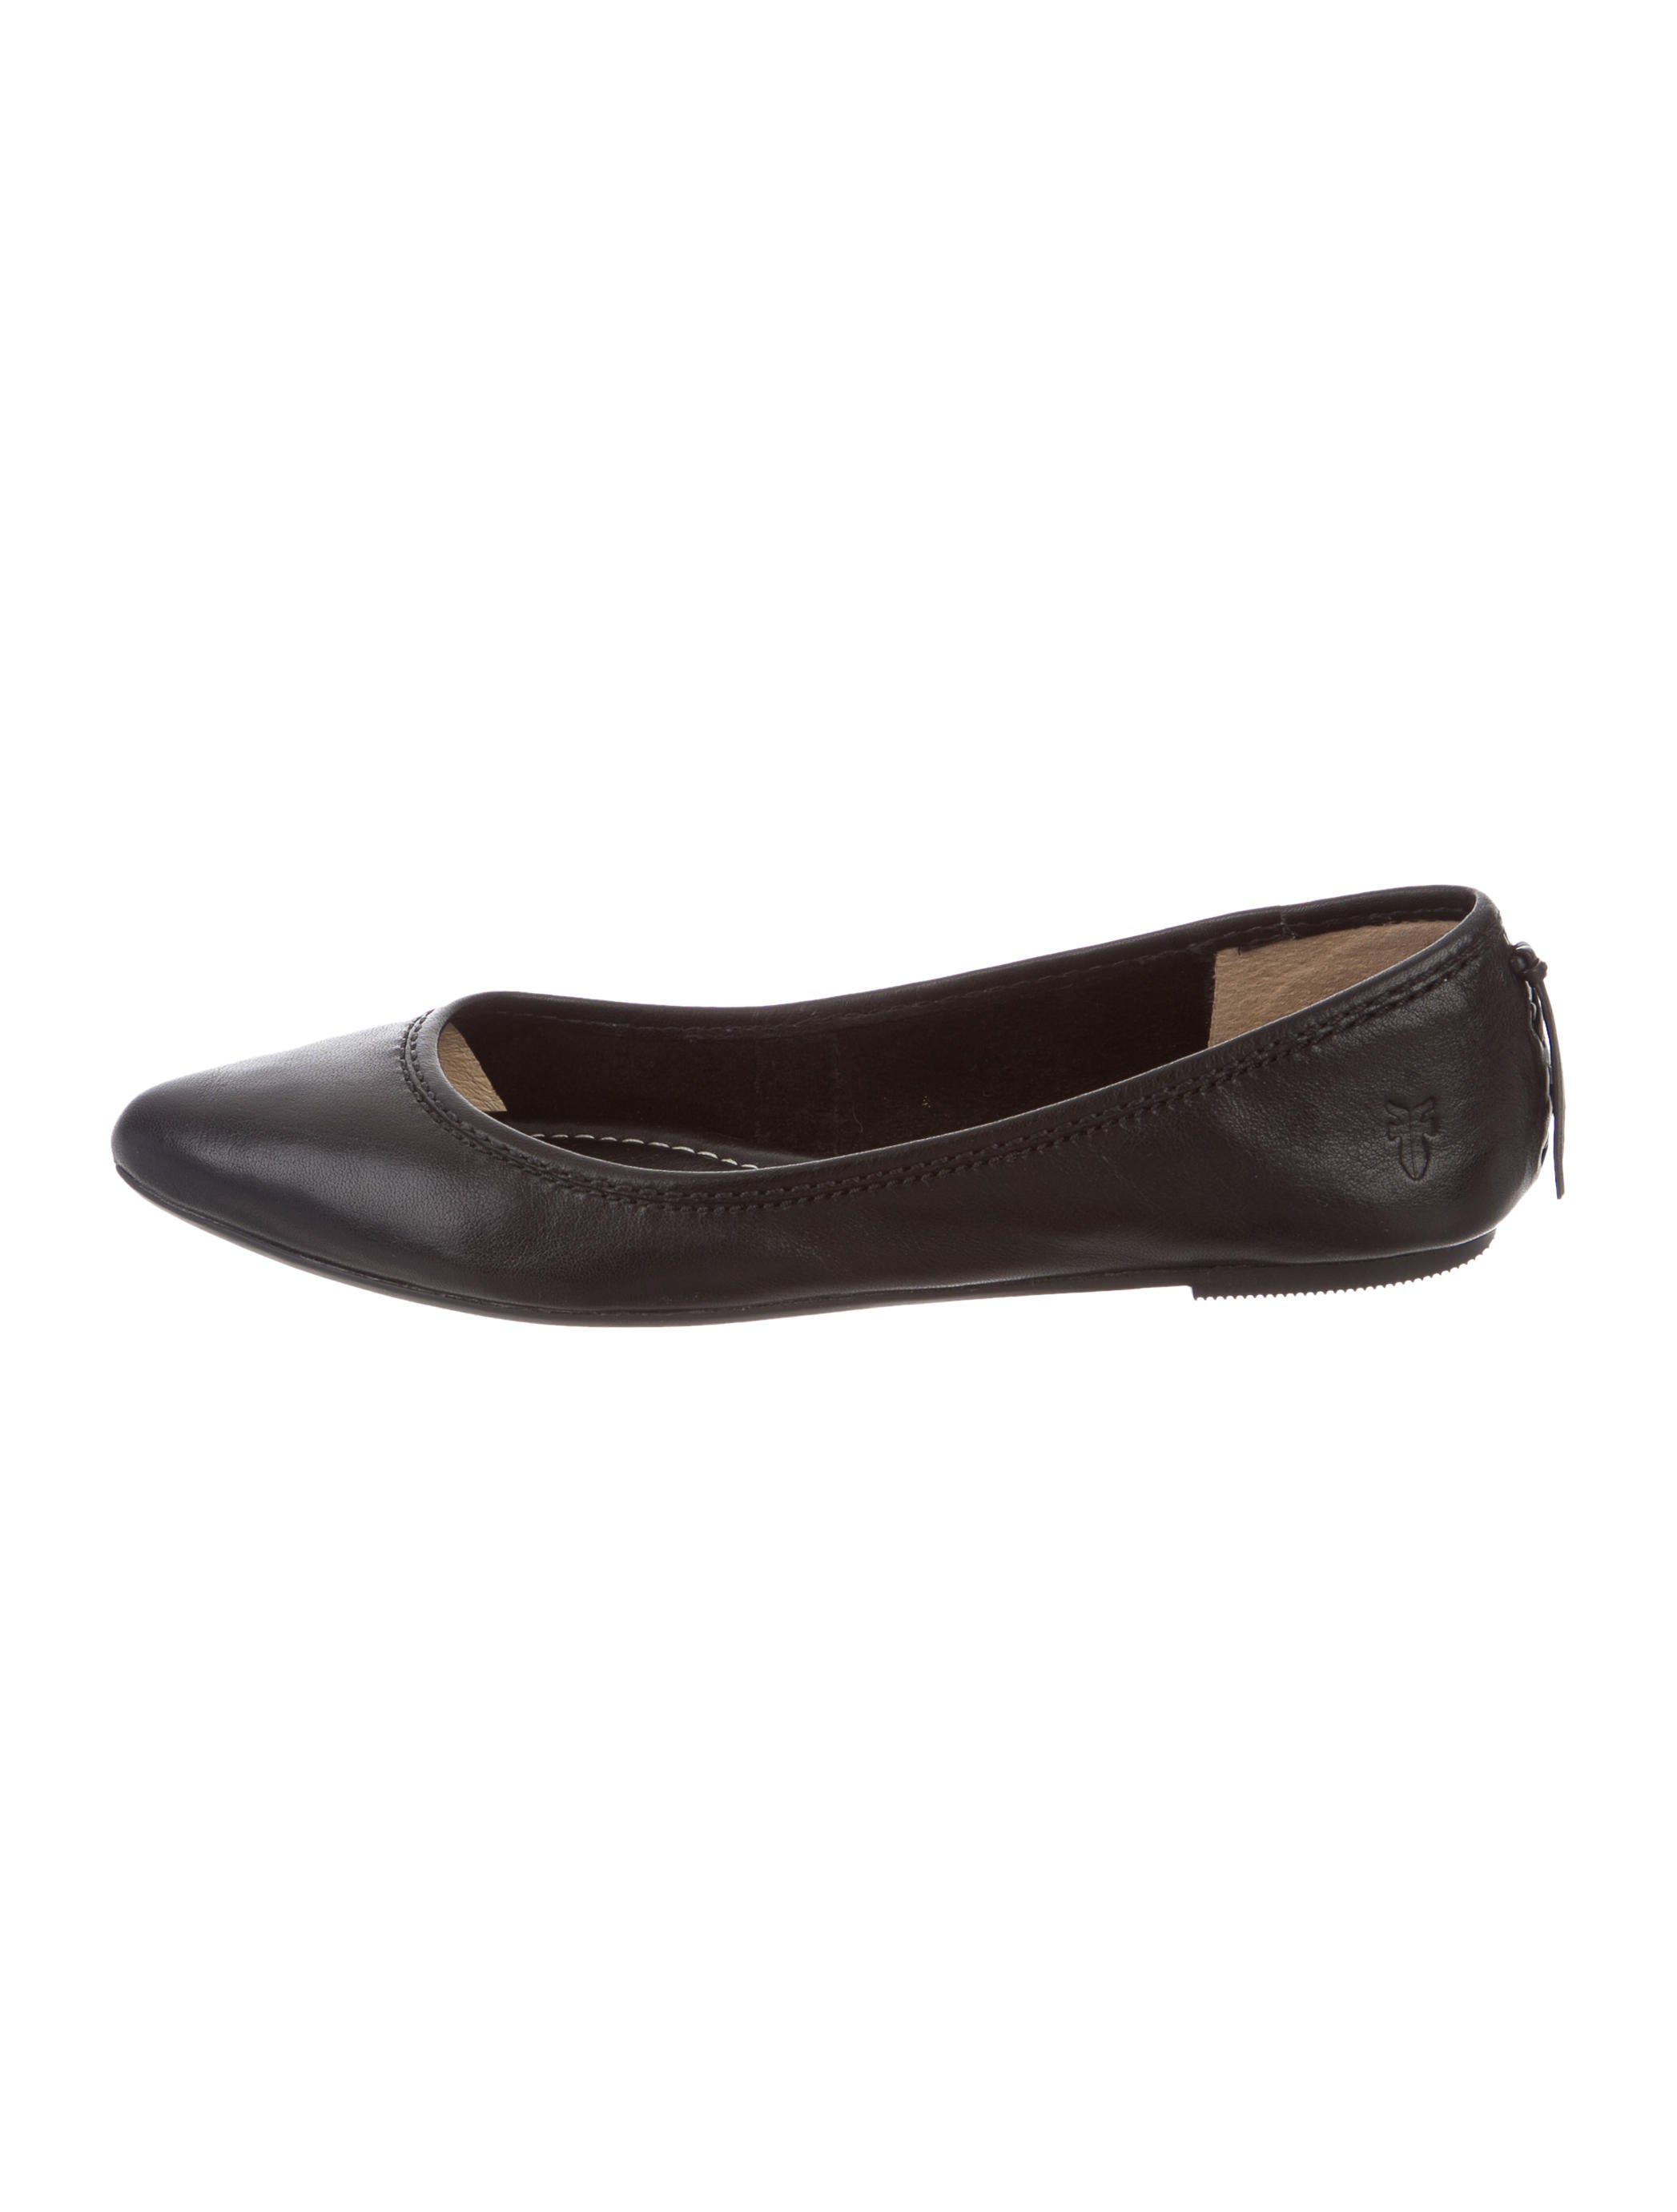 frye leather pointed toe flats shoes wf821013 the